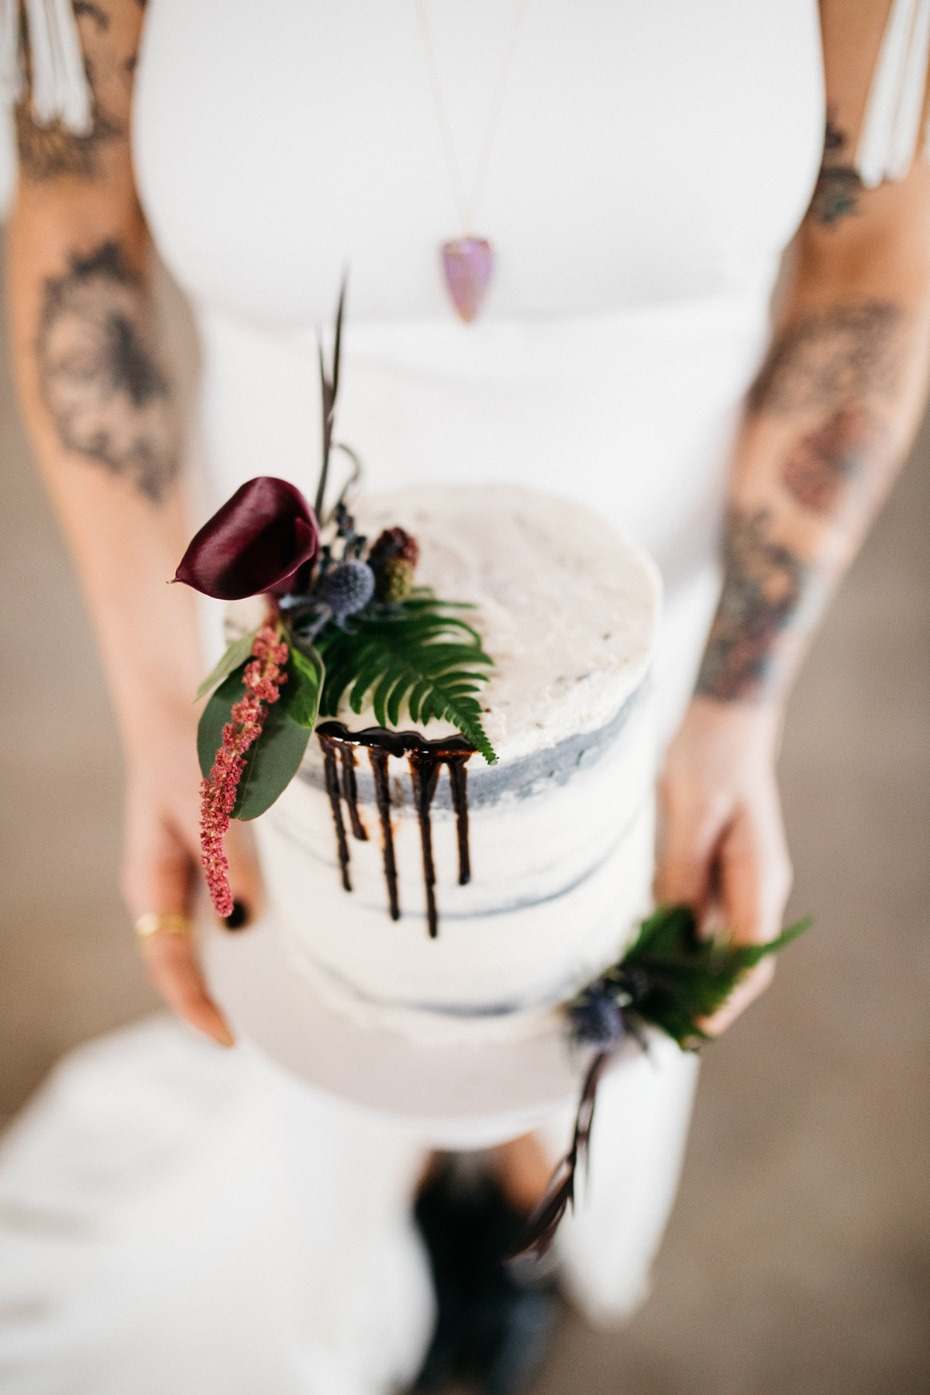 Drip naked cake for two